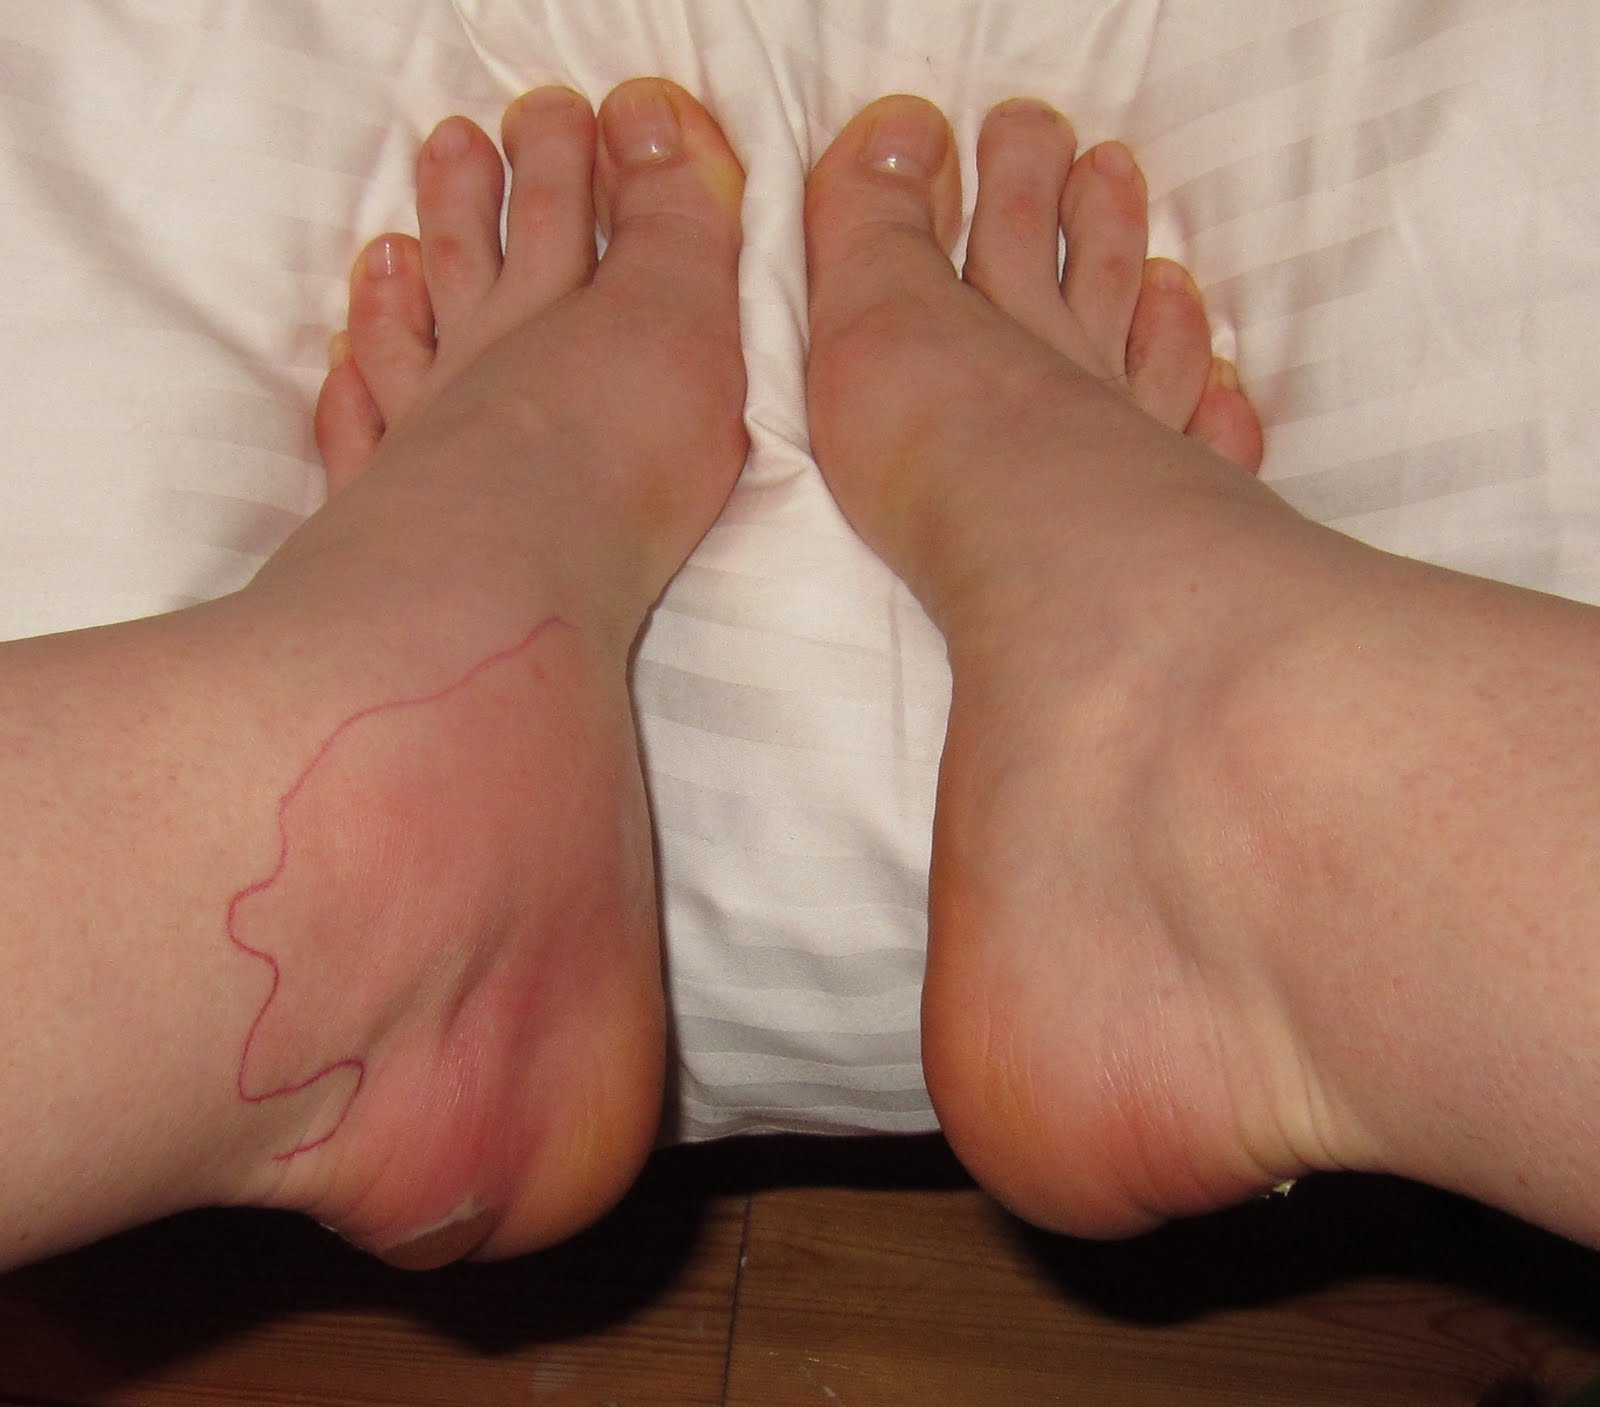 Cellulitis on the feet: how to get rid 73